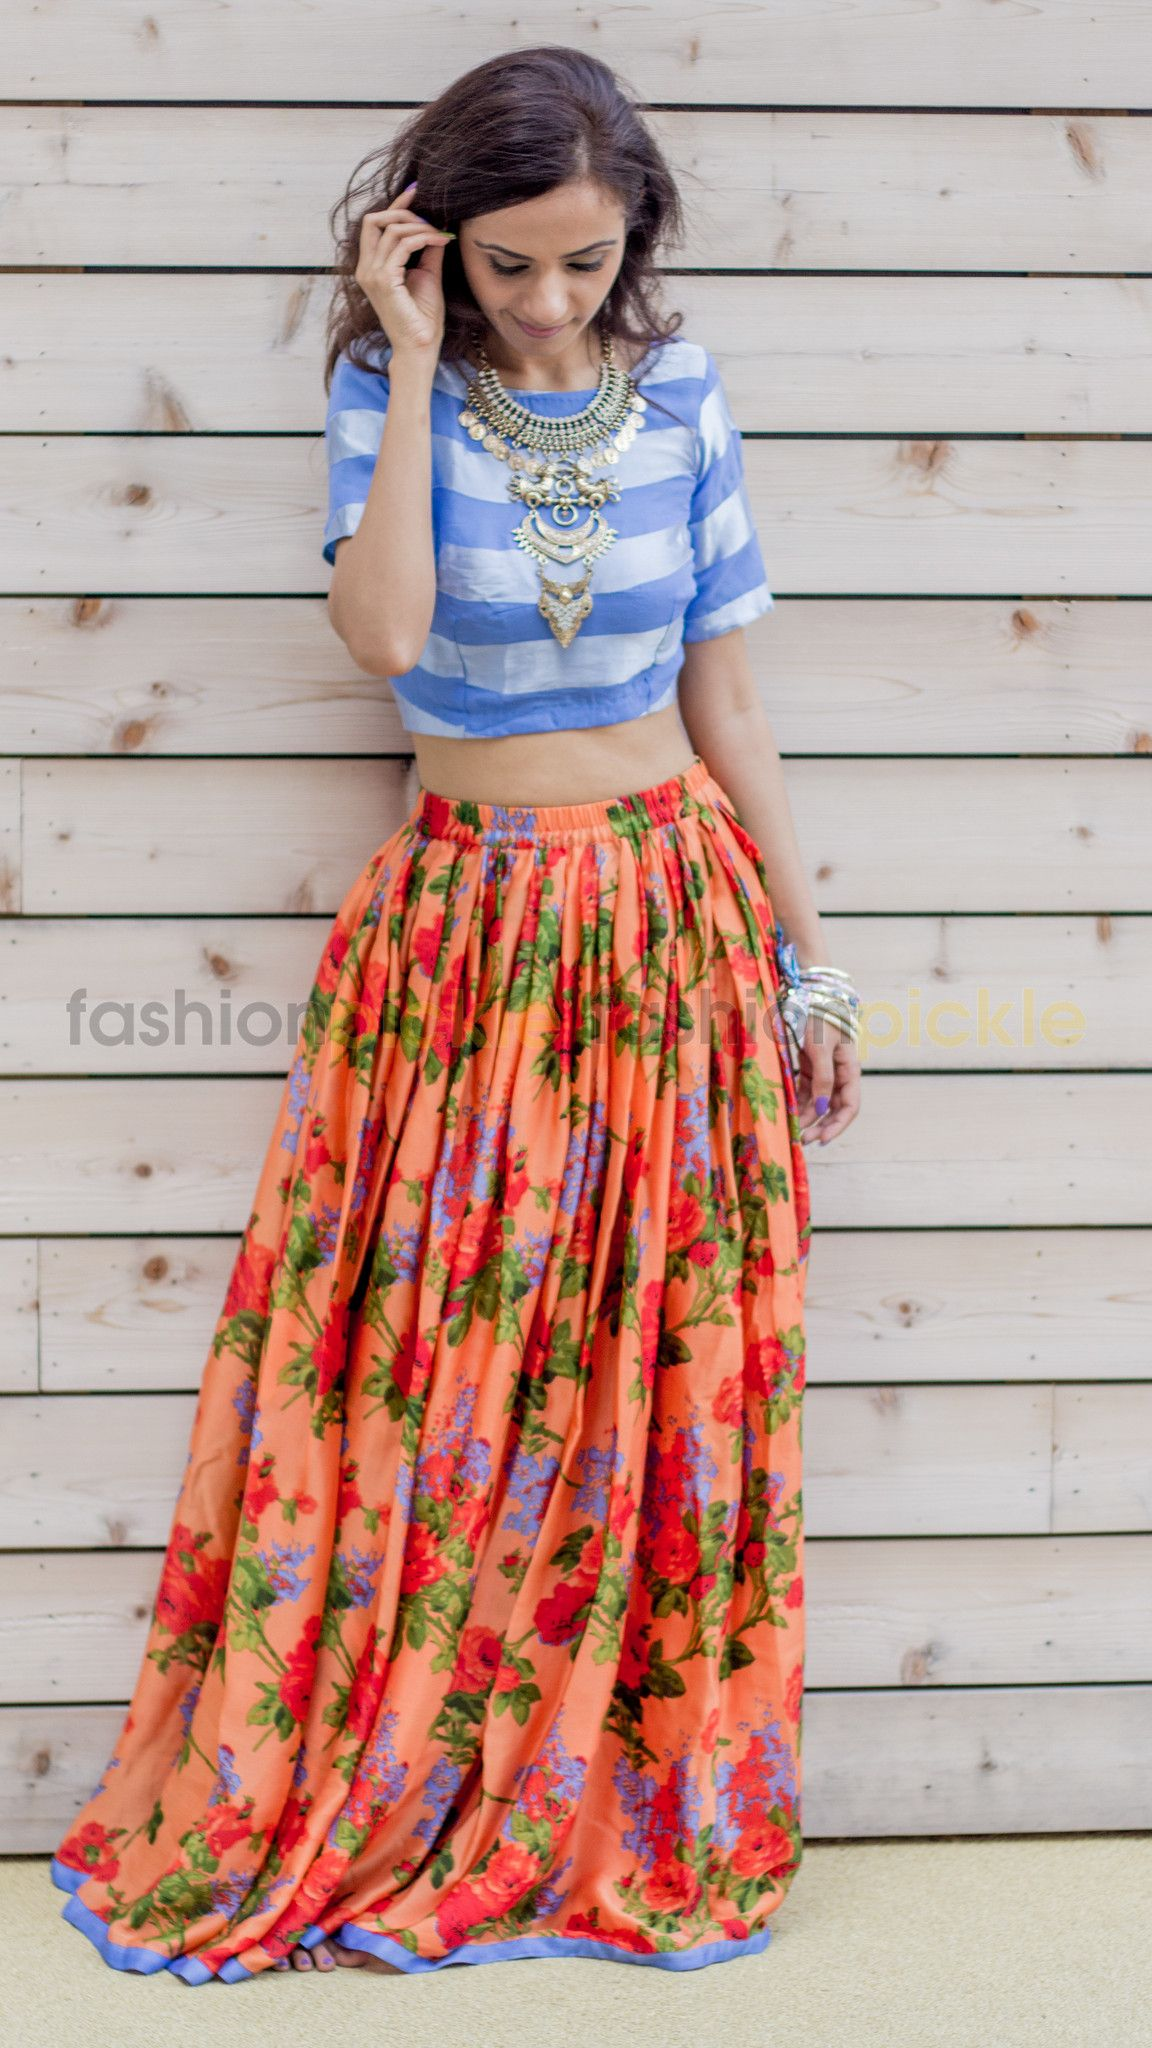 a108f35cd2849 Pleated Long Print Silk Orange and blue skirt with a blue Blouse. Blouse  and skirt are both silk. We make your outfit to fit you. Your dress will be  made to ...